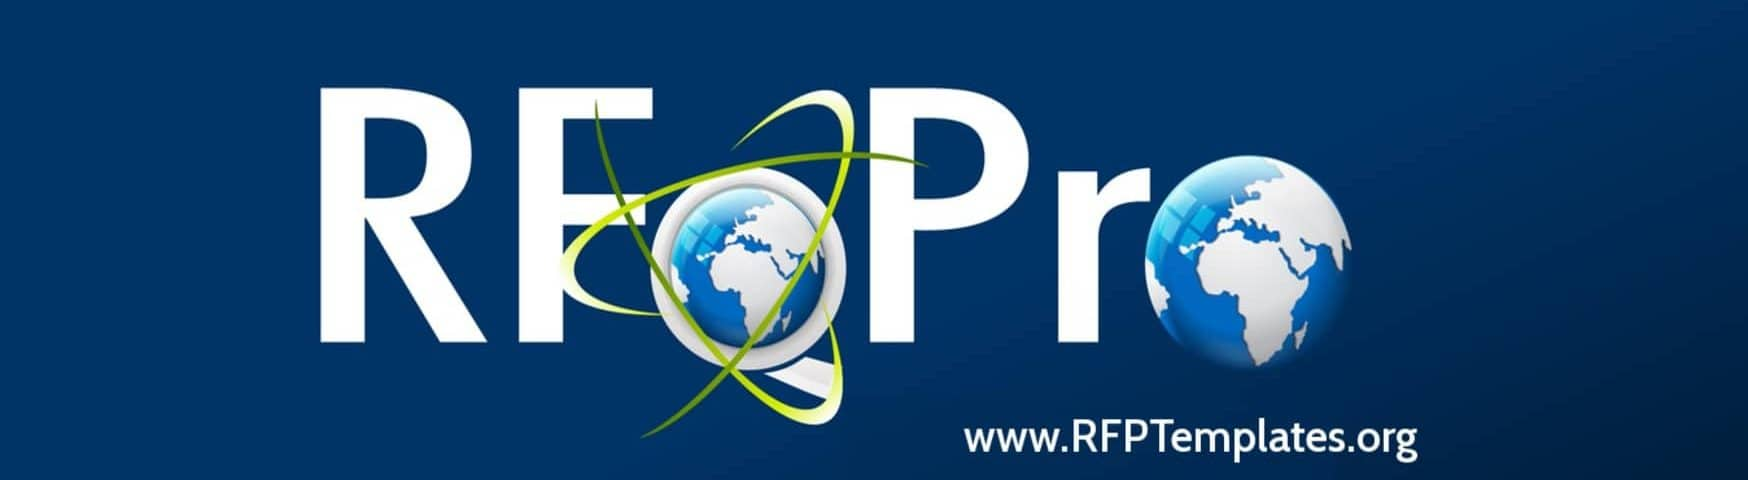 RFP Templates | Free Sample Request for Proposal Form